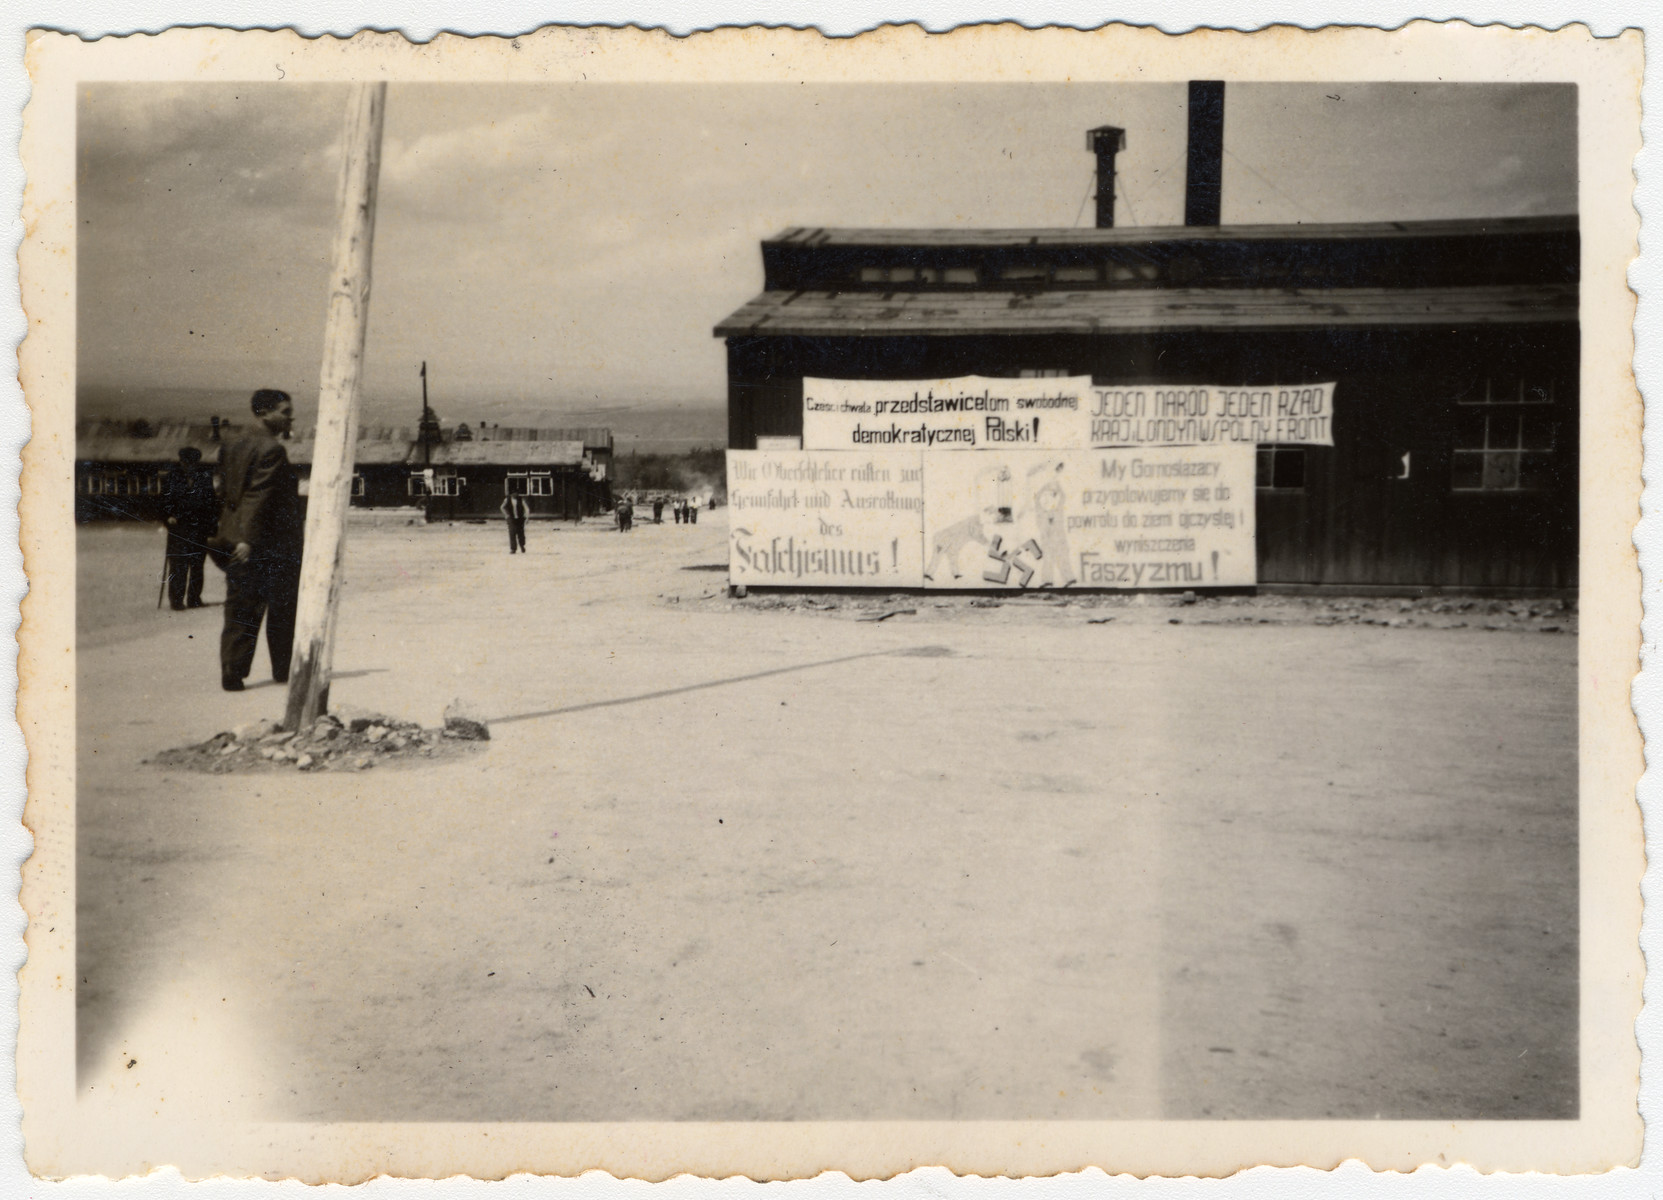 View of a barrack plastered with anti-Nazi signs in the Buchenwald camp, taken in June 1945.